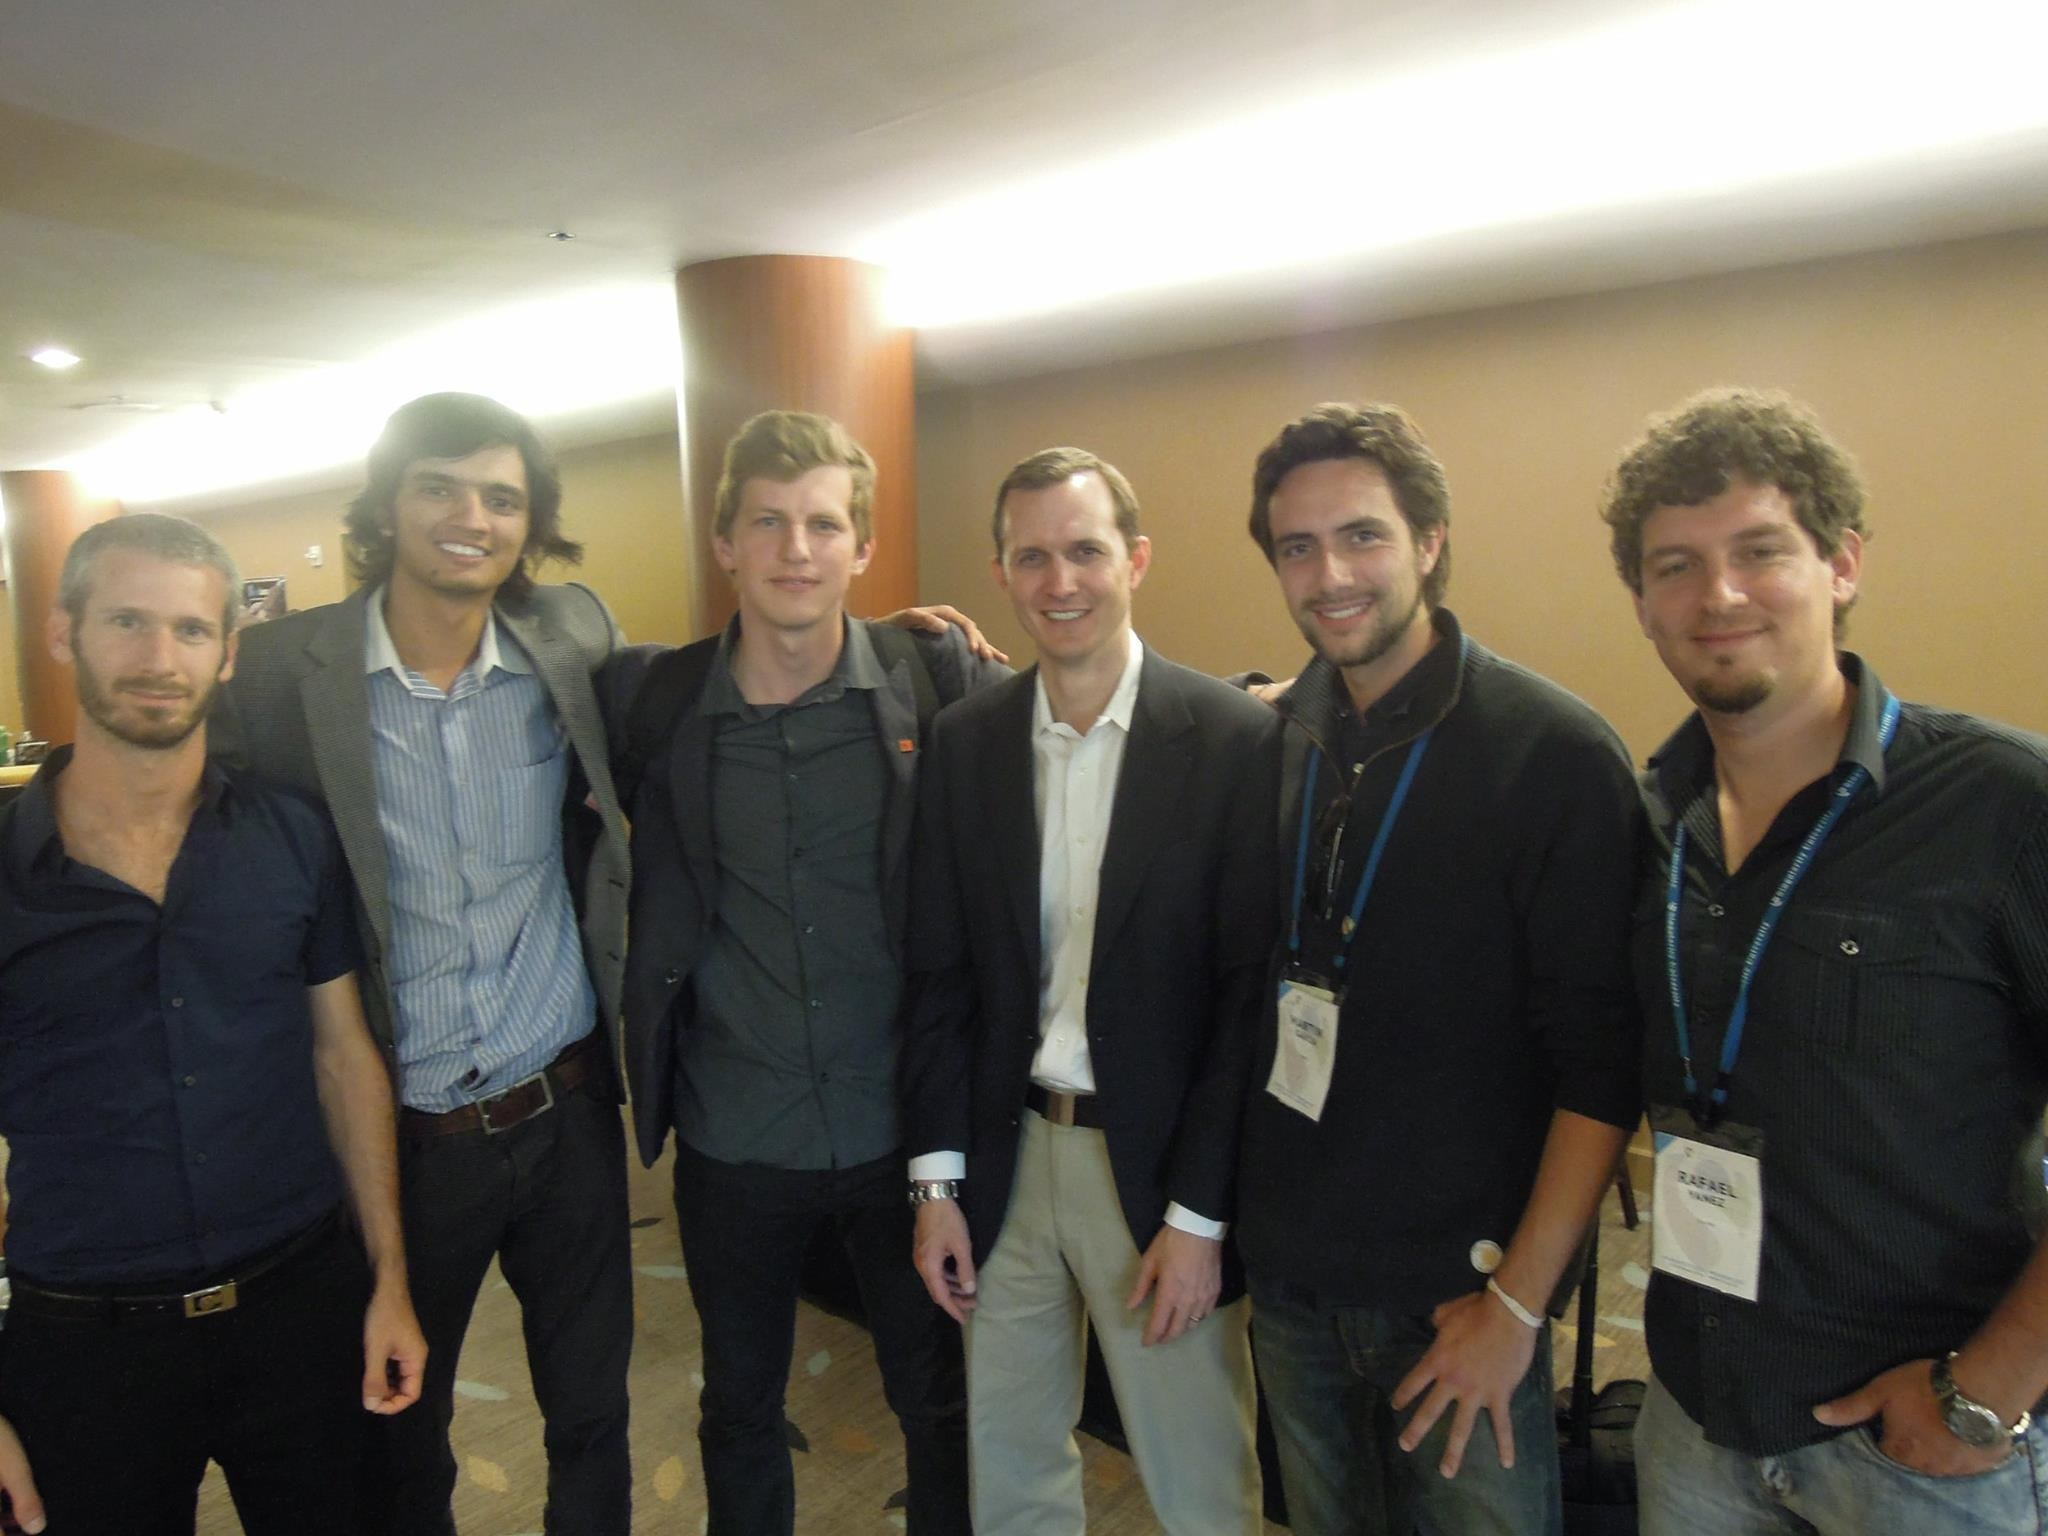 Menshenin and his Singularity University team with George Whitesides, CEO of Virgin Galactic (third from right). Photo: Yaroslav Menshenin // Skoltech.